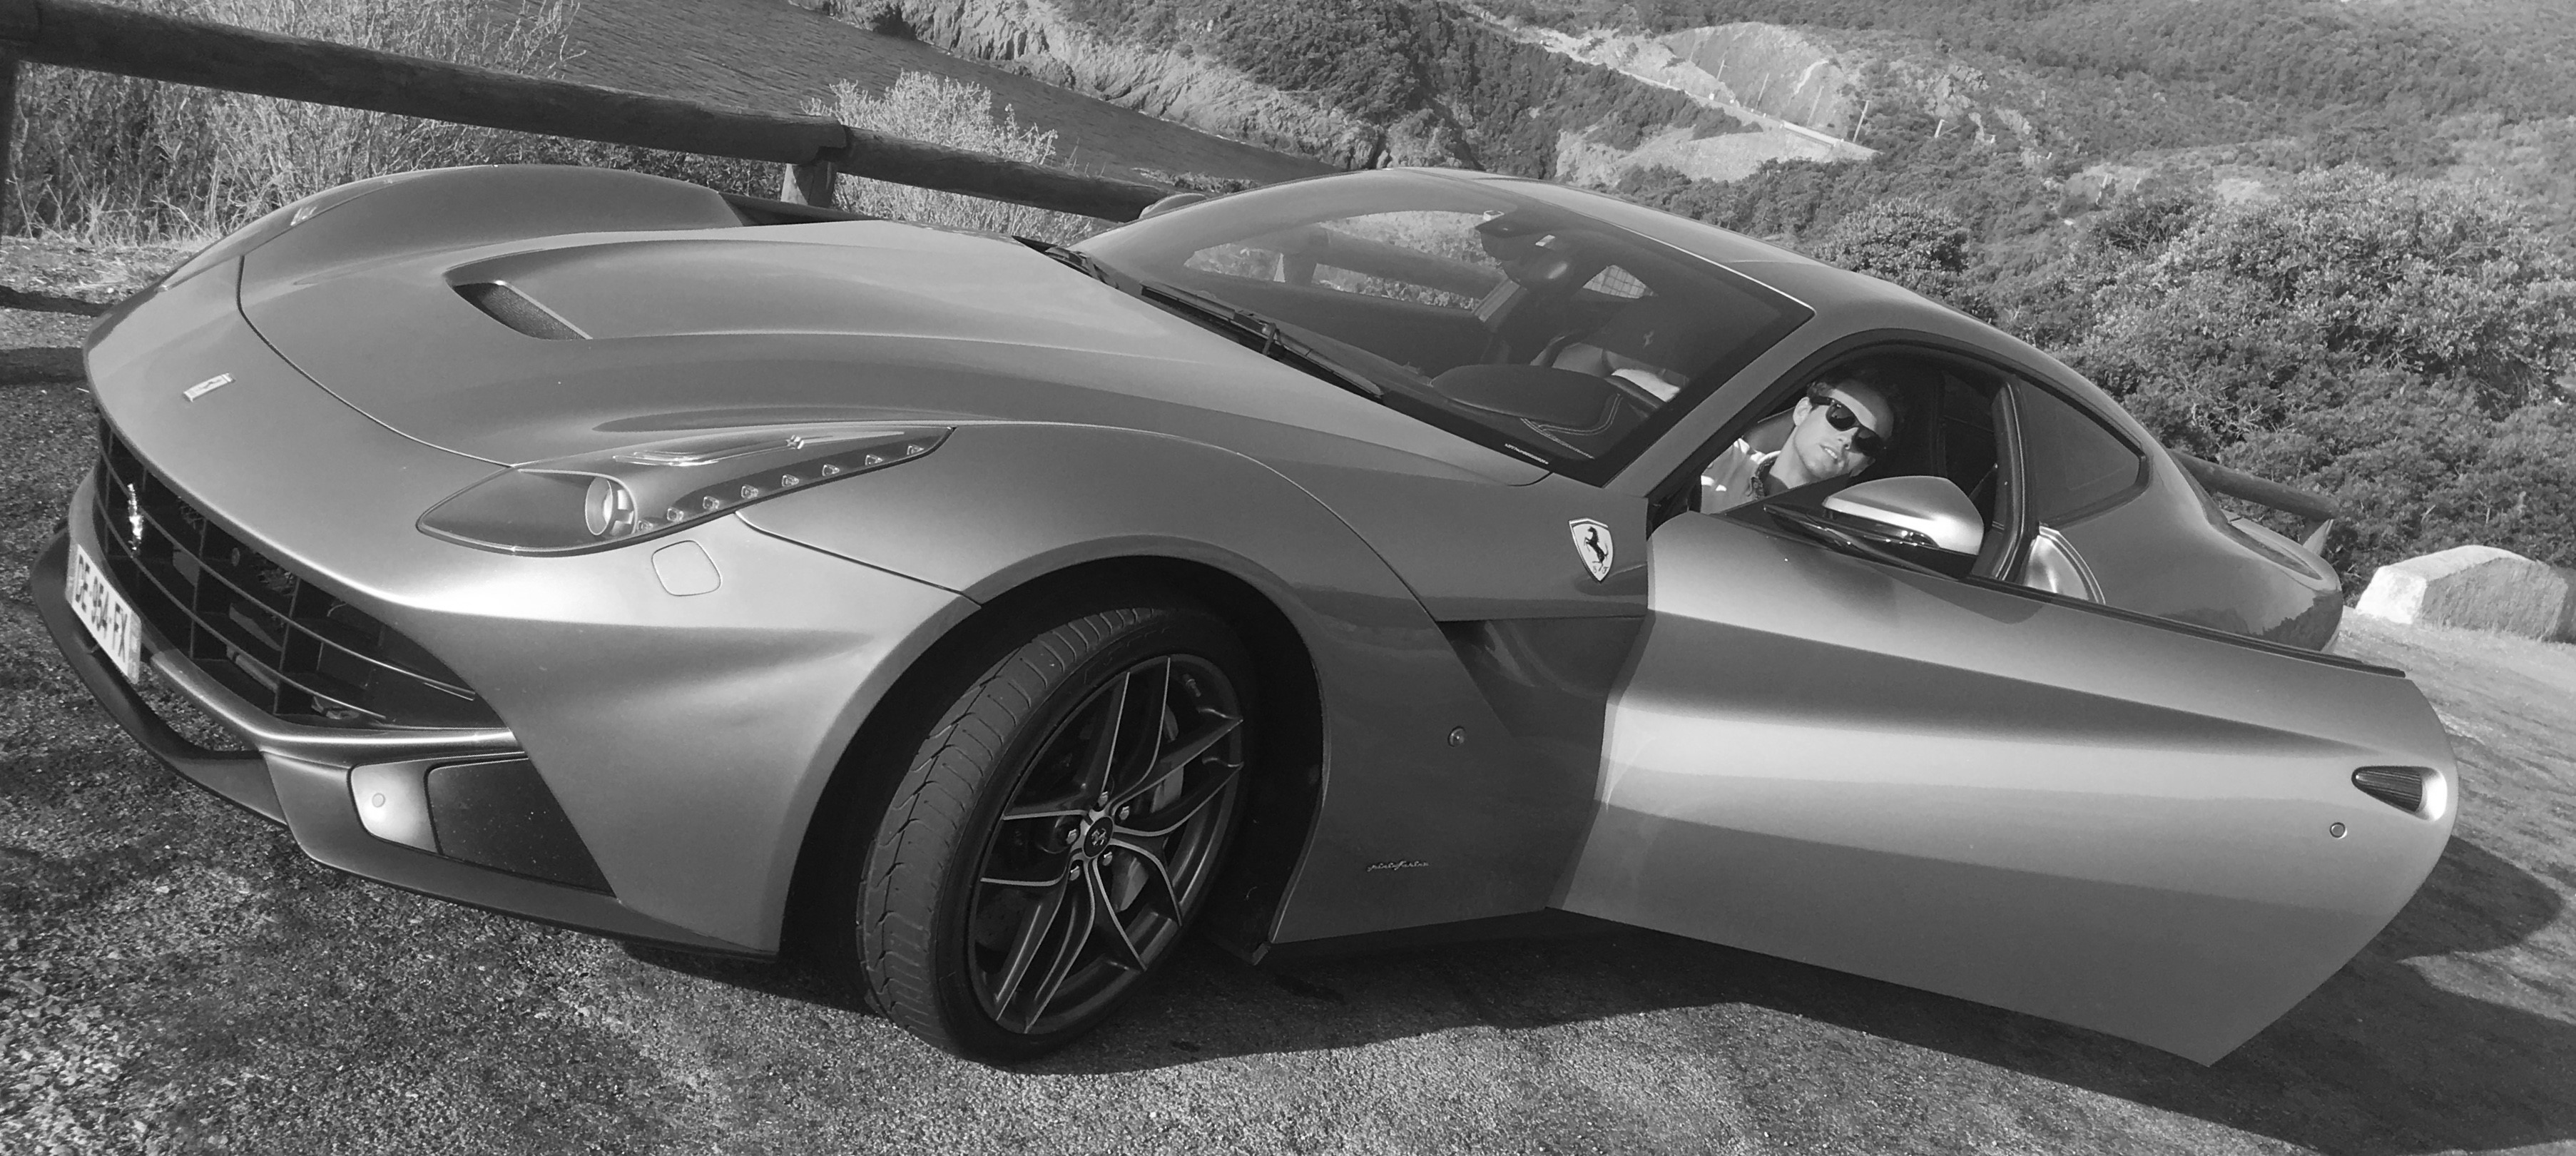 wonderful ferrari f12 berlinetta for hire car4rent